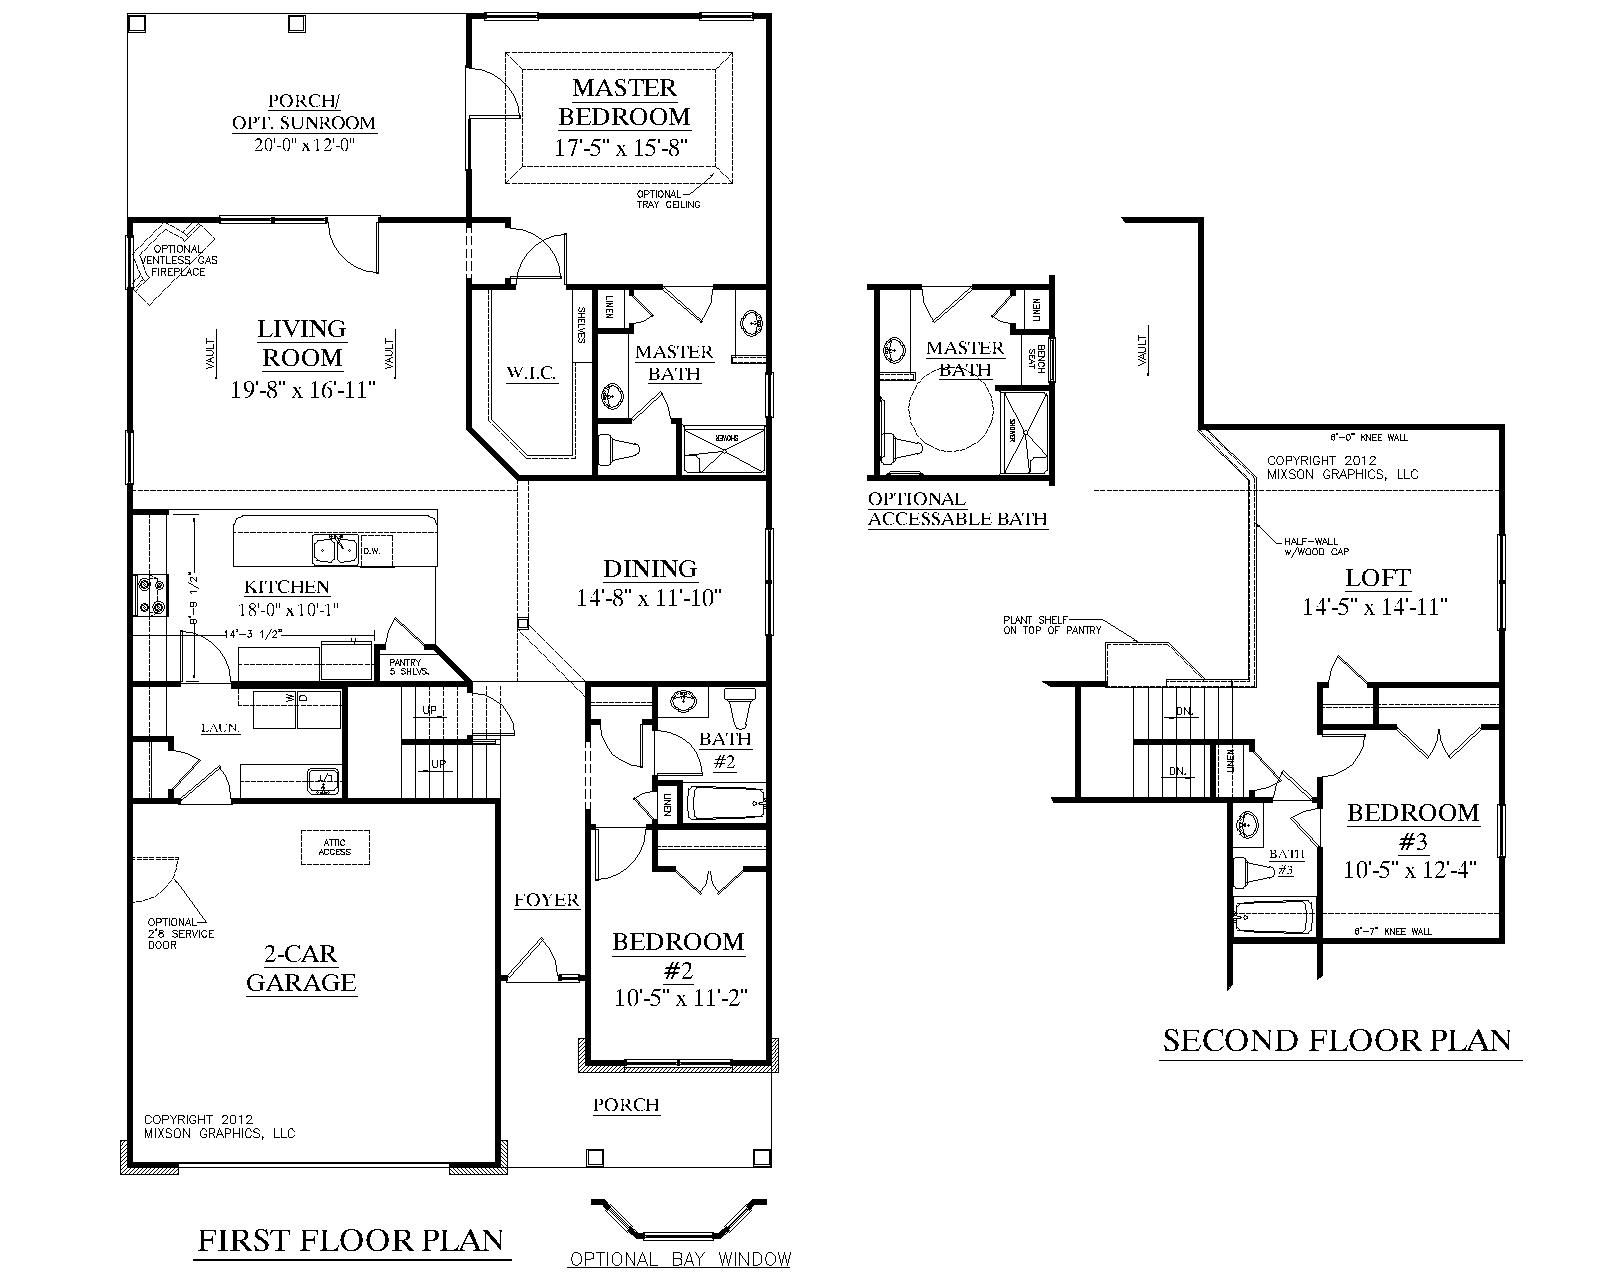 House plan 2224 kingstree floor plan traditional 1 1 2 for Classic house plans